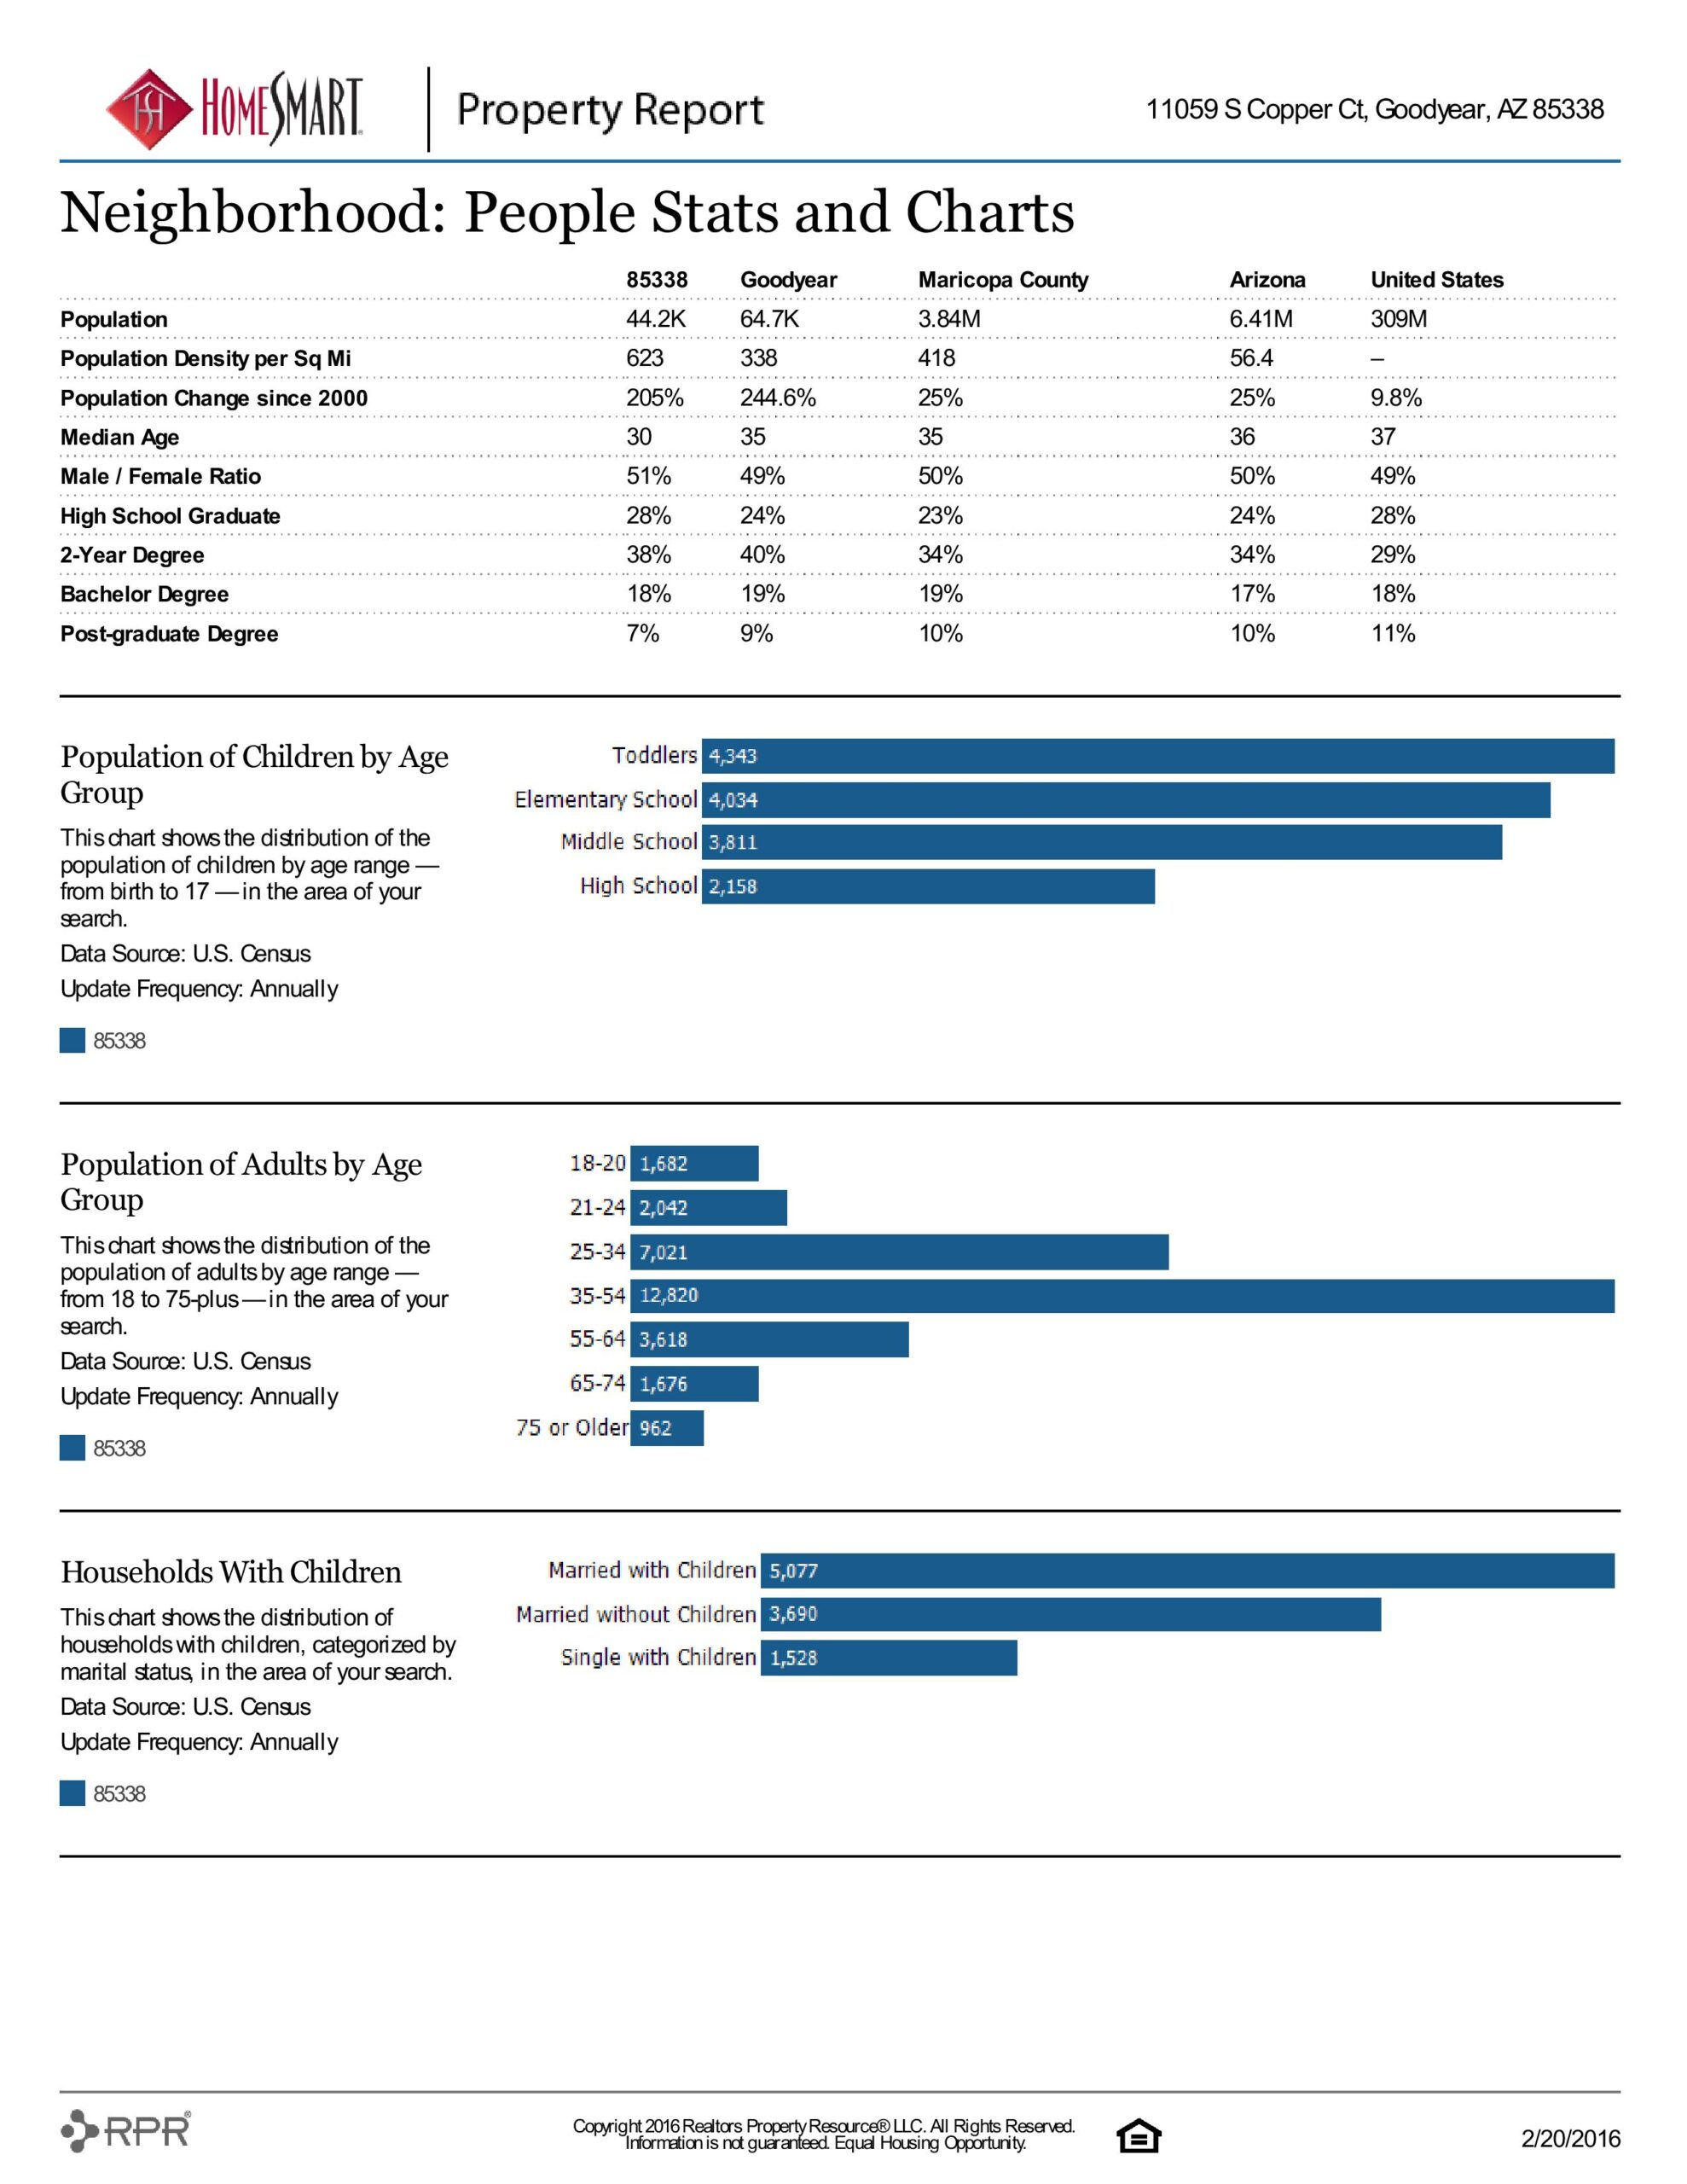 11059 S COPPER CT PROPERTY REPORT-page-021